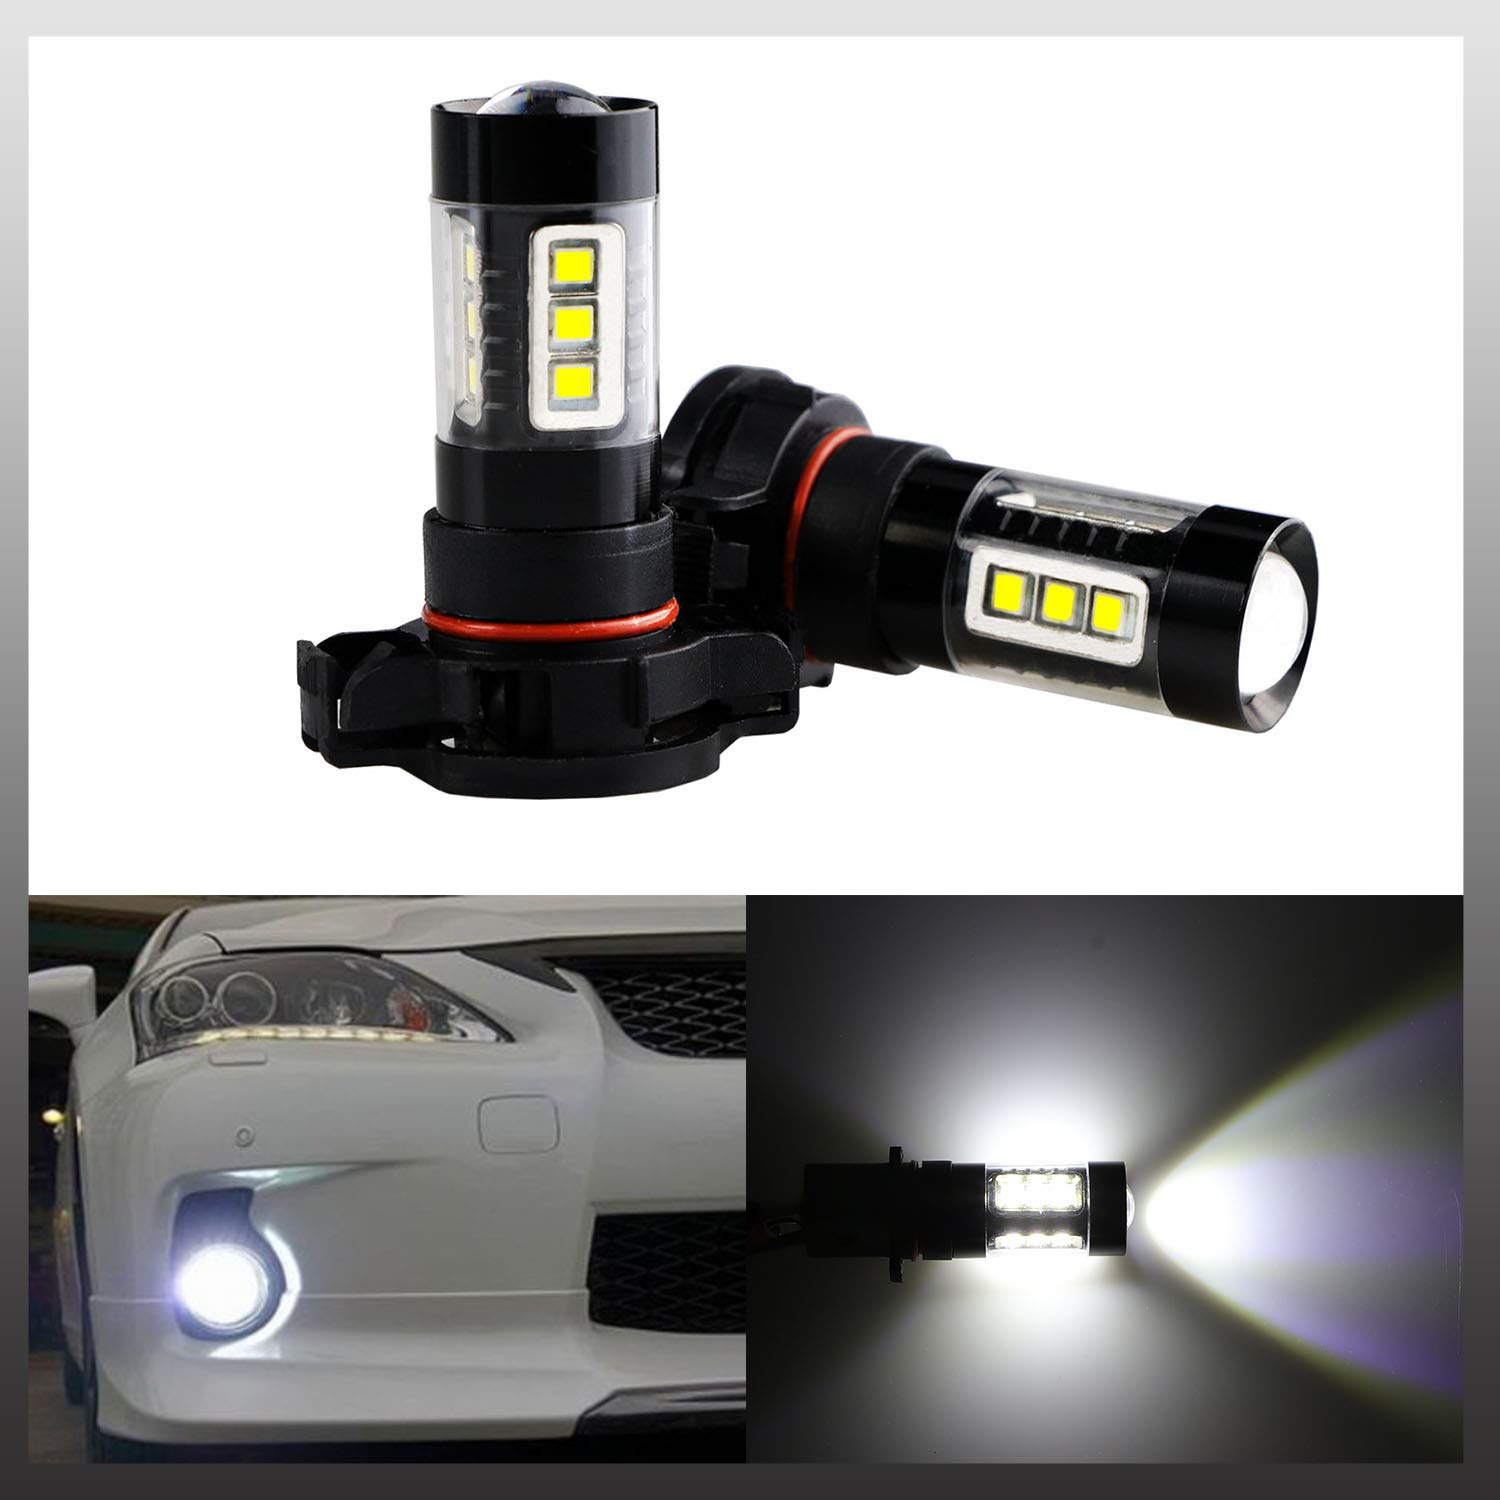 Pack of 2 9040 9045 9140 9145 9050 9155 H10 PY20D Fog Light Bulbs LED H10 Ultra Extremely Bright 16 SMD 3030 Gold Yellow Driving Light Bulbs Lamps